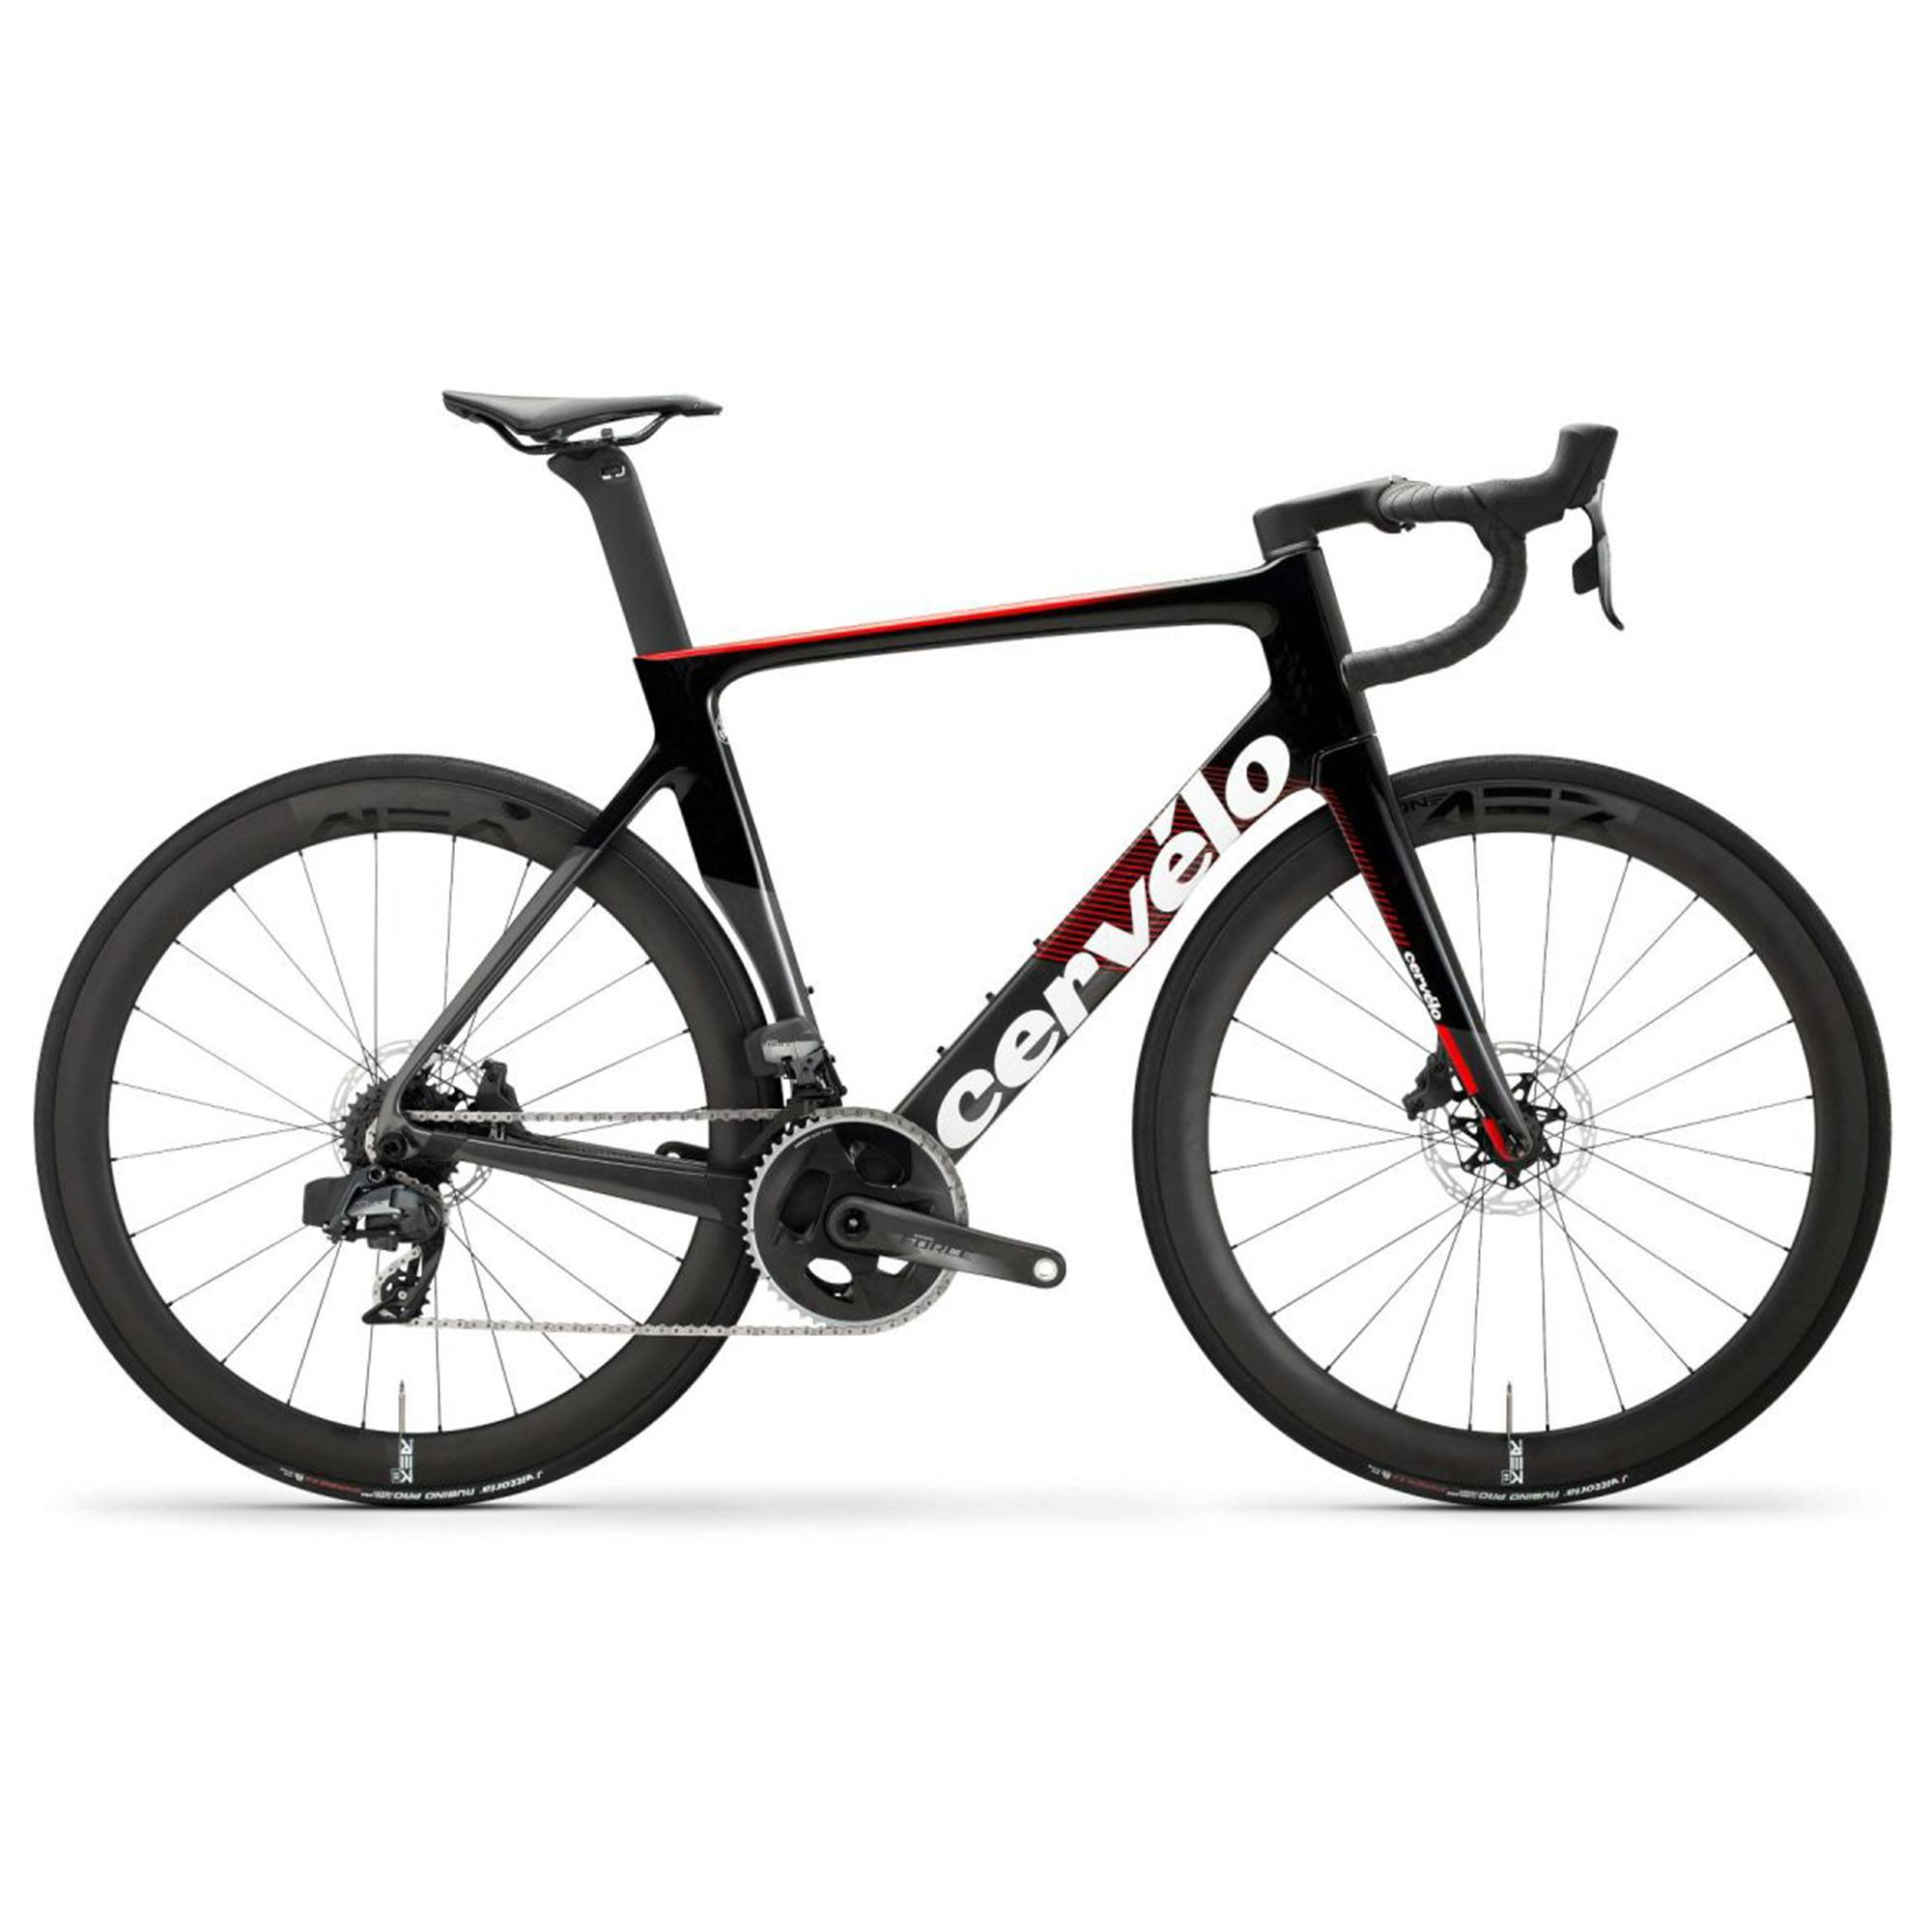 Cervelo Men's S-Series Force AXS Road Bike '20  - Graphite/Black/Red - Size: 54